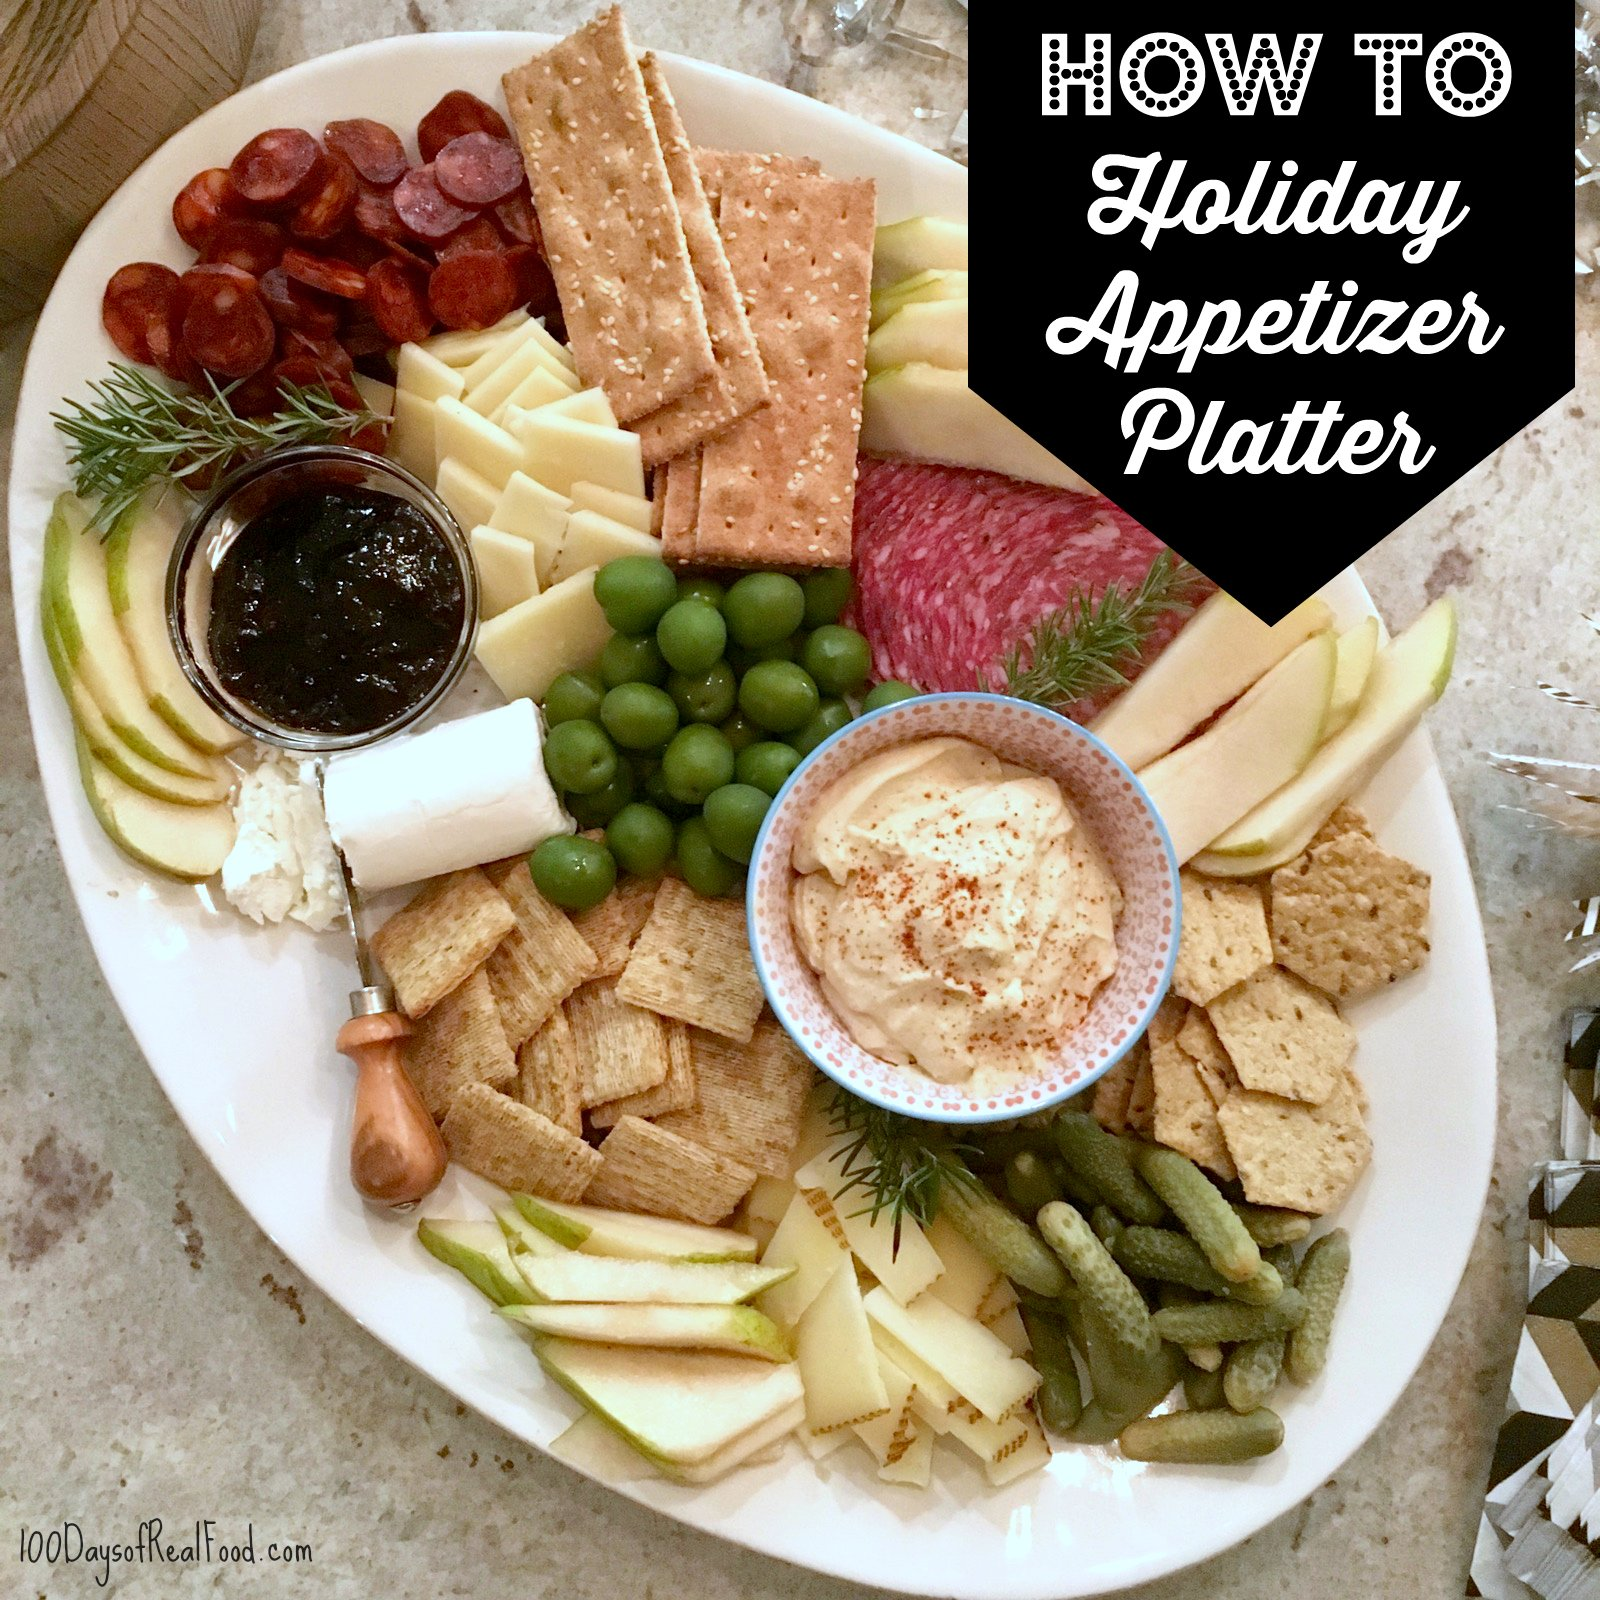 Holiday Appetizer Platter - How To on 100 Days of Real Food